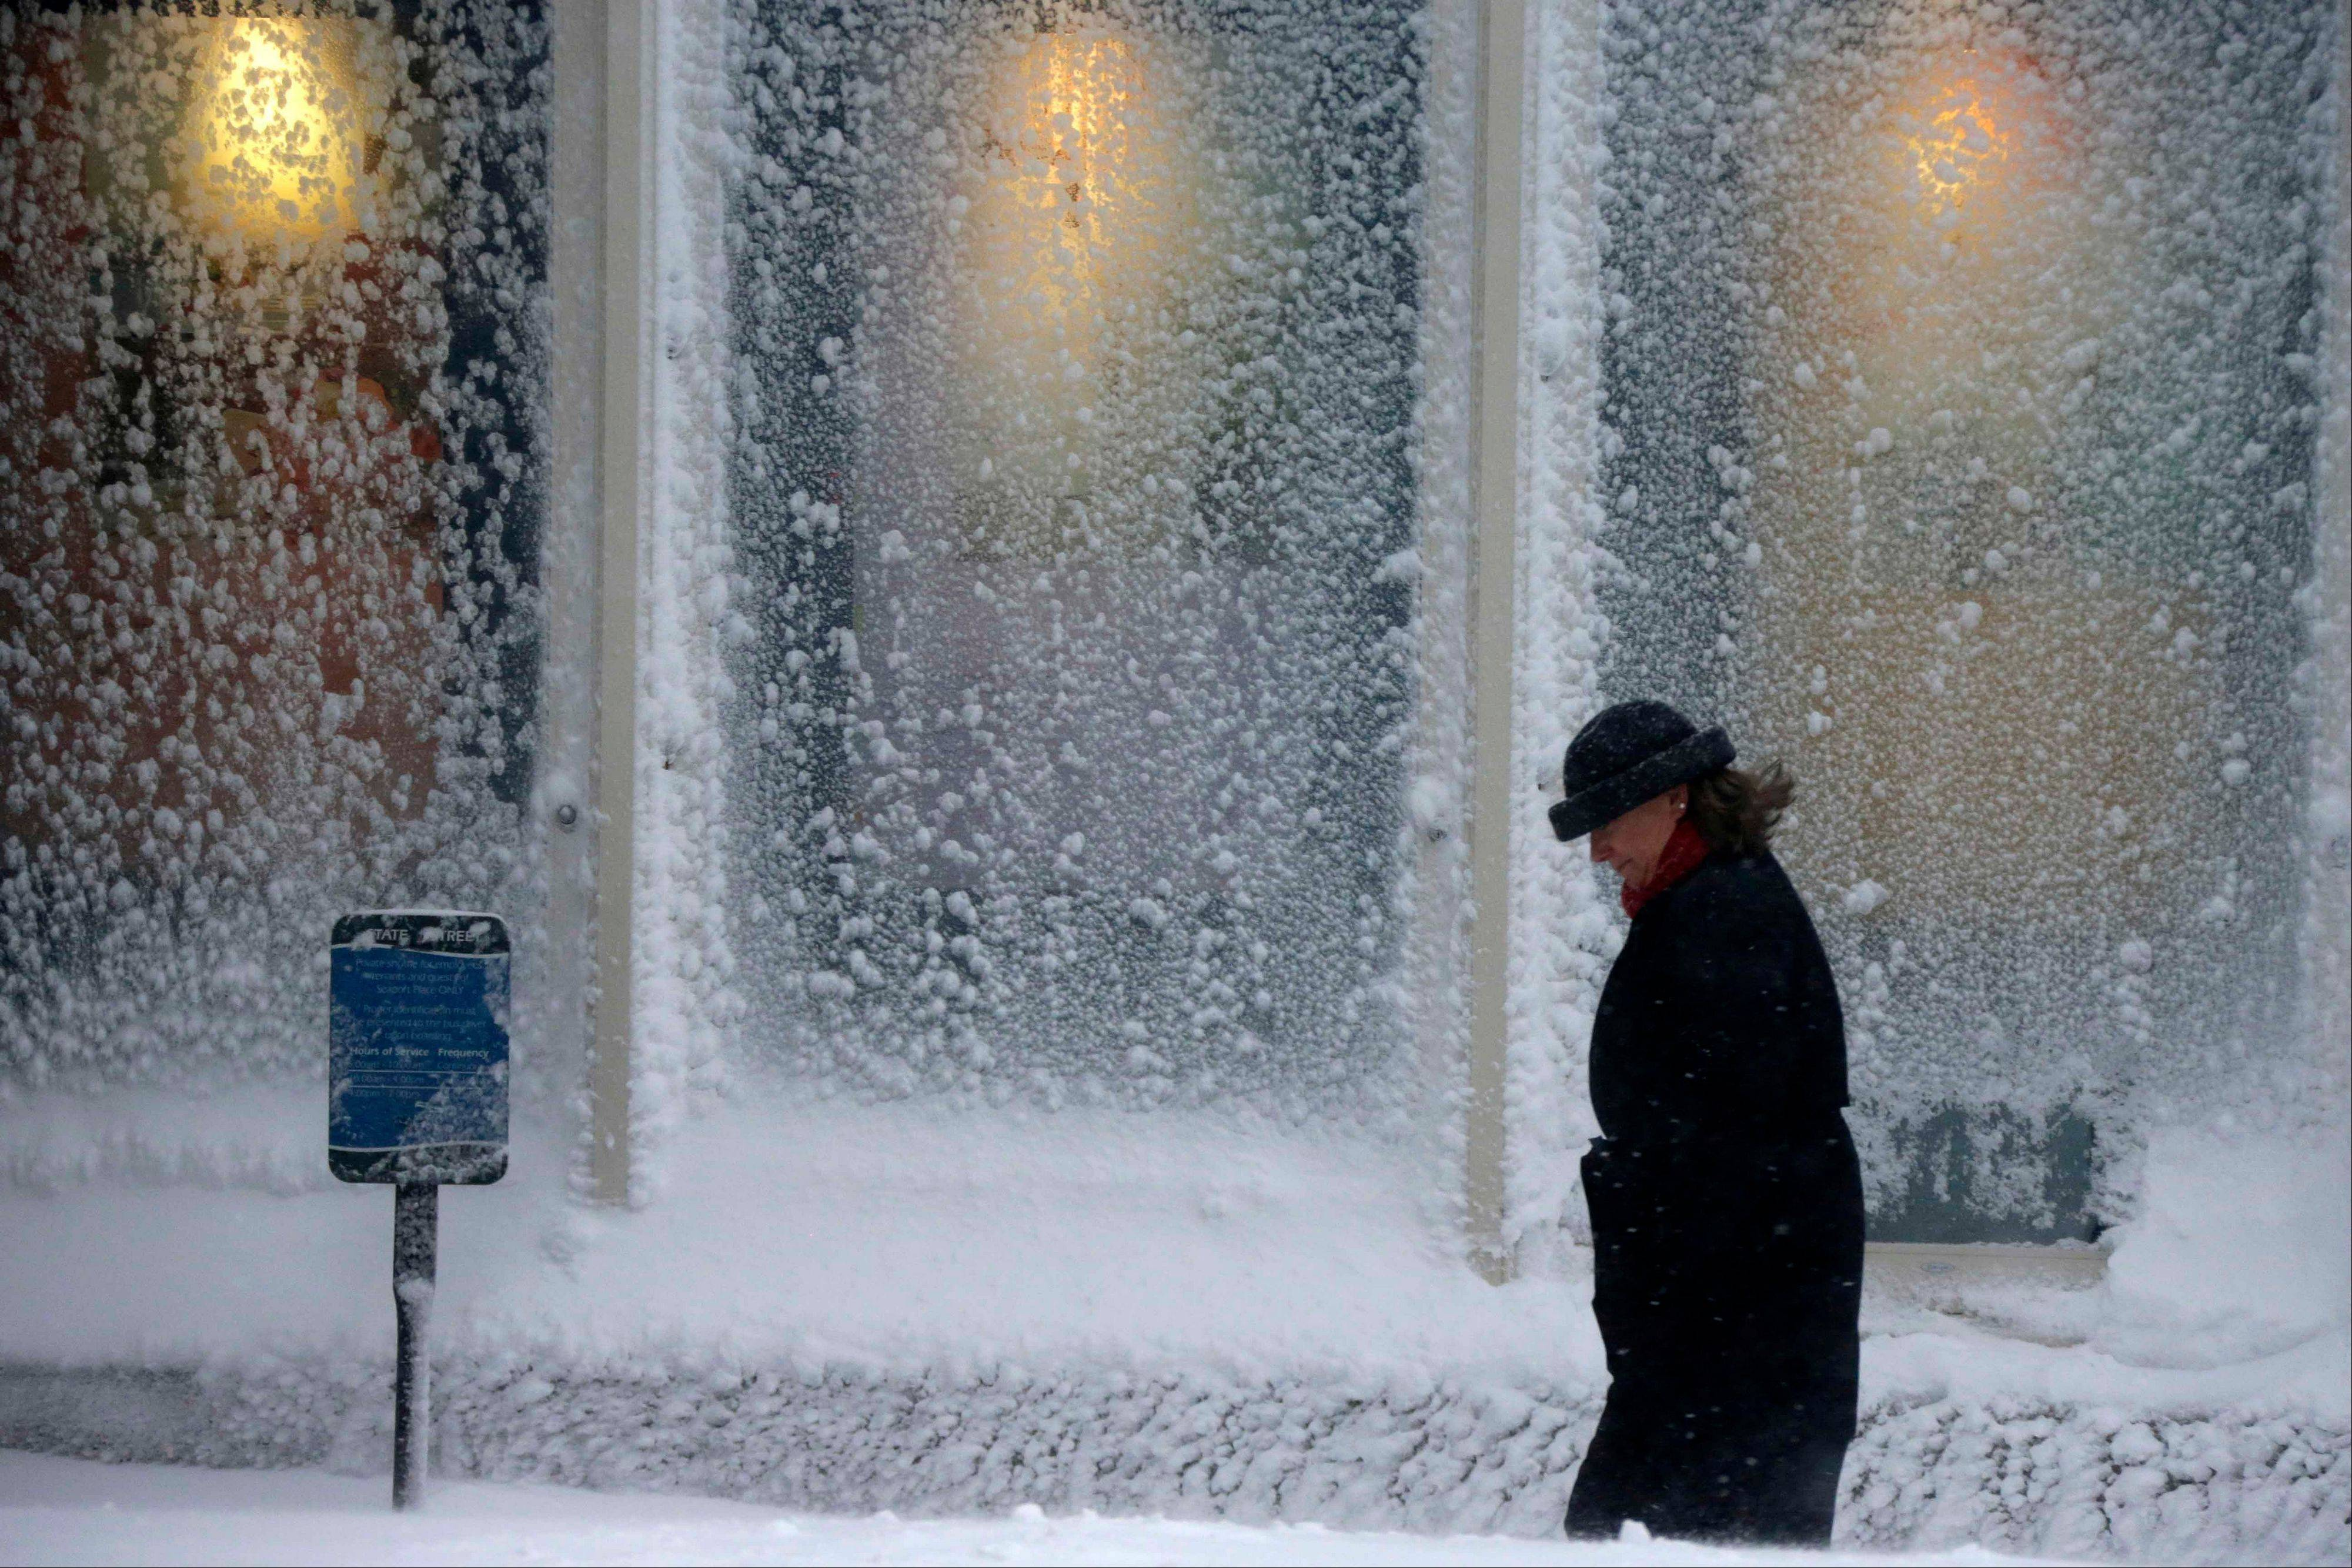 A woman walks past windows covered with snow at the Seaport World Trade Center in Boston early Saturday, Feb. 9, 2013.